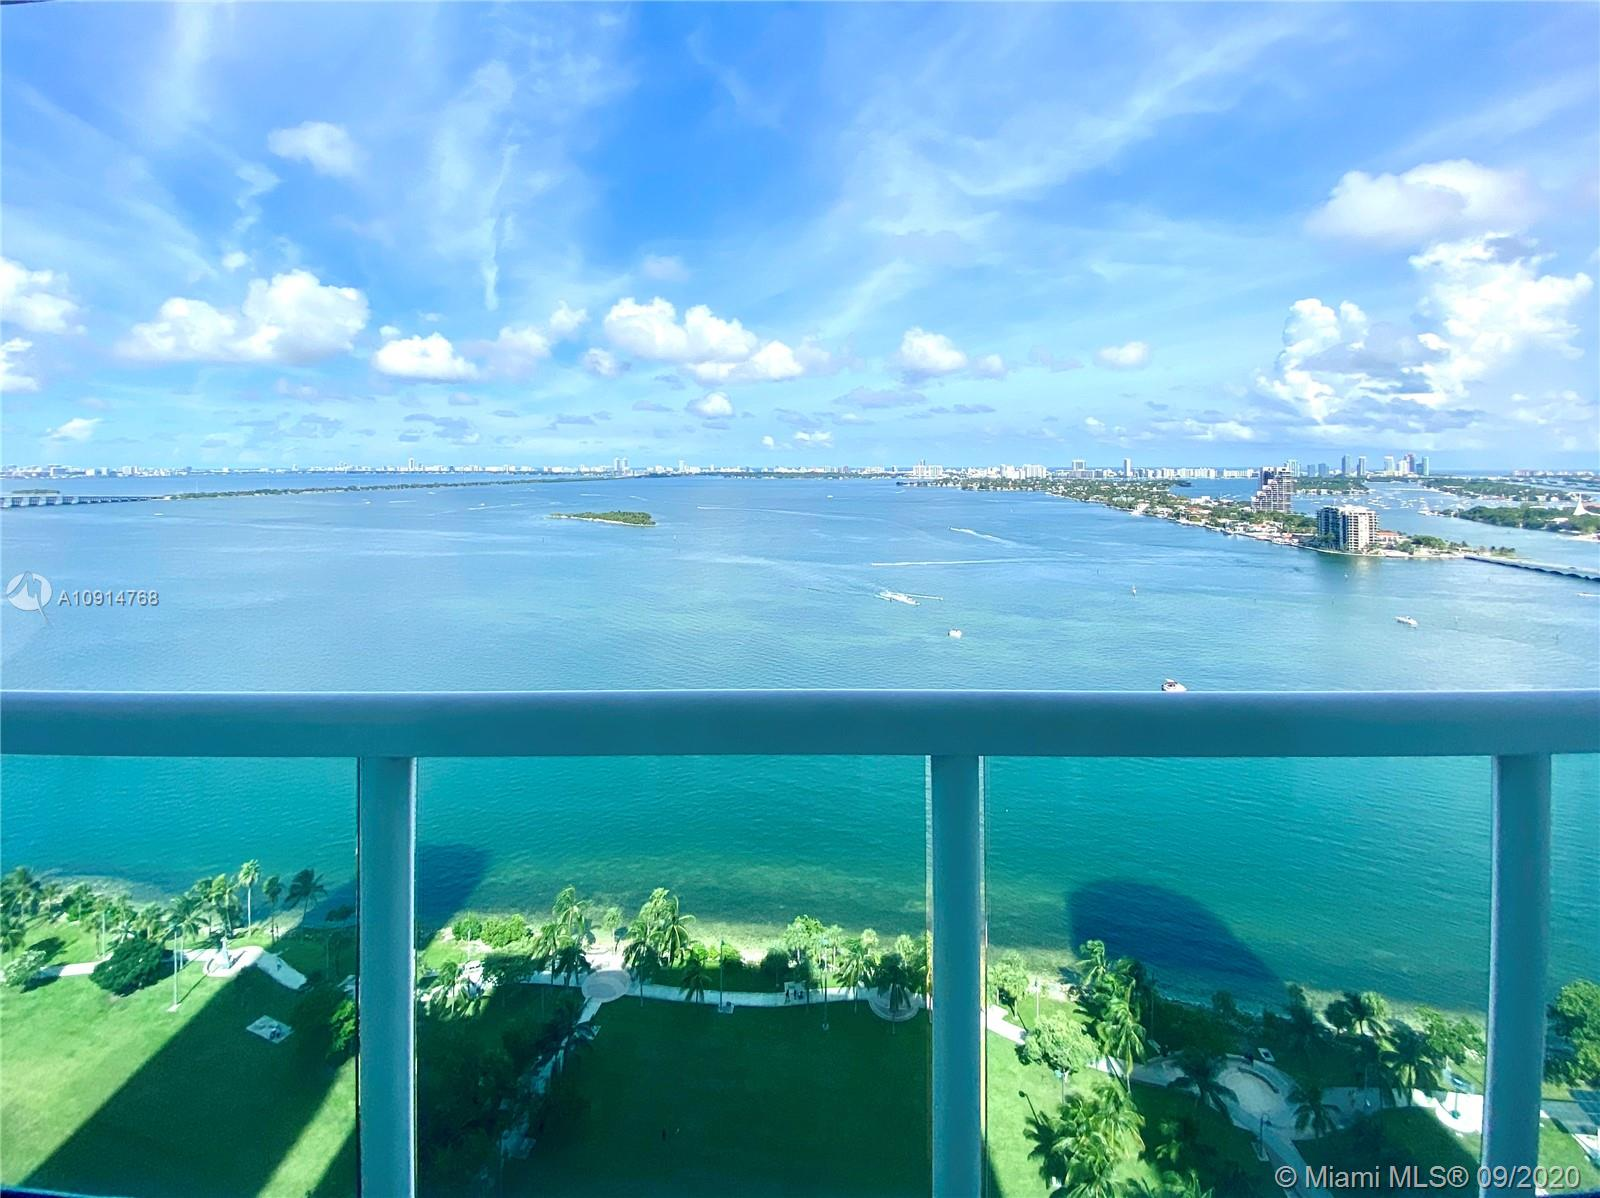 Discover an unrivaled location, complete with spacious accommodations and state-of-the-art amenities at this luxury condo, situated right on Biscayne Bay. 1800 Club is a 40-story high-rise conveniently located within a short distance from Downtown Miami's world-renowned restaurants, American Airlines Arena, Adrienne Arsht Center for the Performing Arts, Marlins Park, the Design District, Miami International Airport, and the sizzling nightlife of South Beach. This home at 1800 Club features panoramic views of the Bay, South Beach skyline and the Atlantic Ocean. Building amenities include multiple pools, fitness center with spa/sauna/steam room, 24/7 security, valet parking and concierge services. Beautifully finished 2 bedrooms unit for rent, easy to view, vacant. Call now!!!